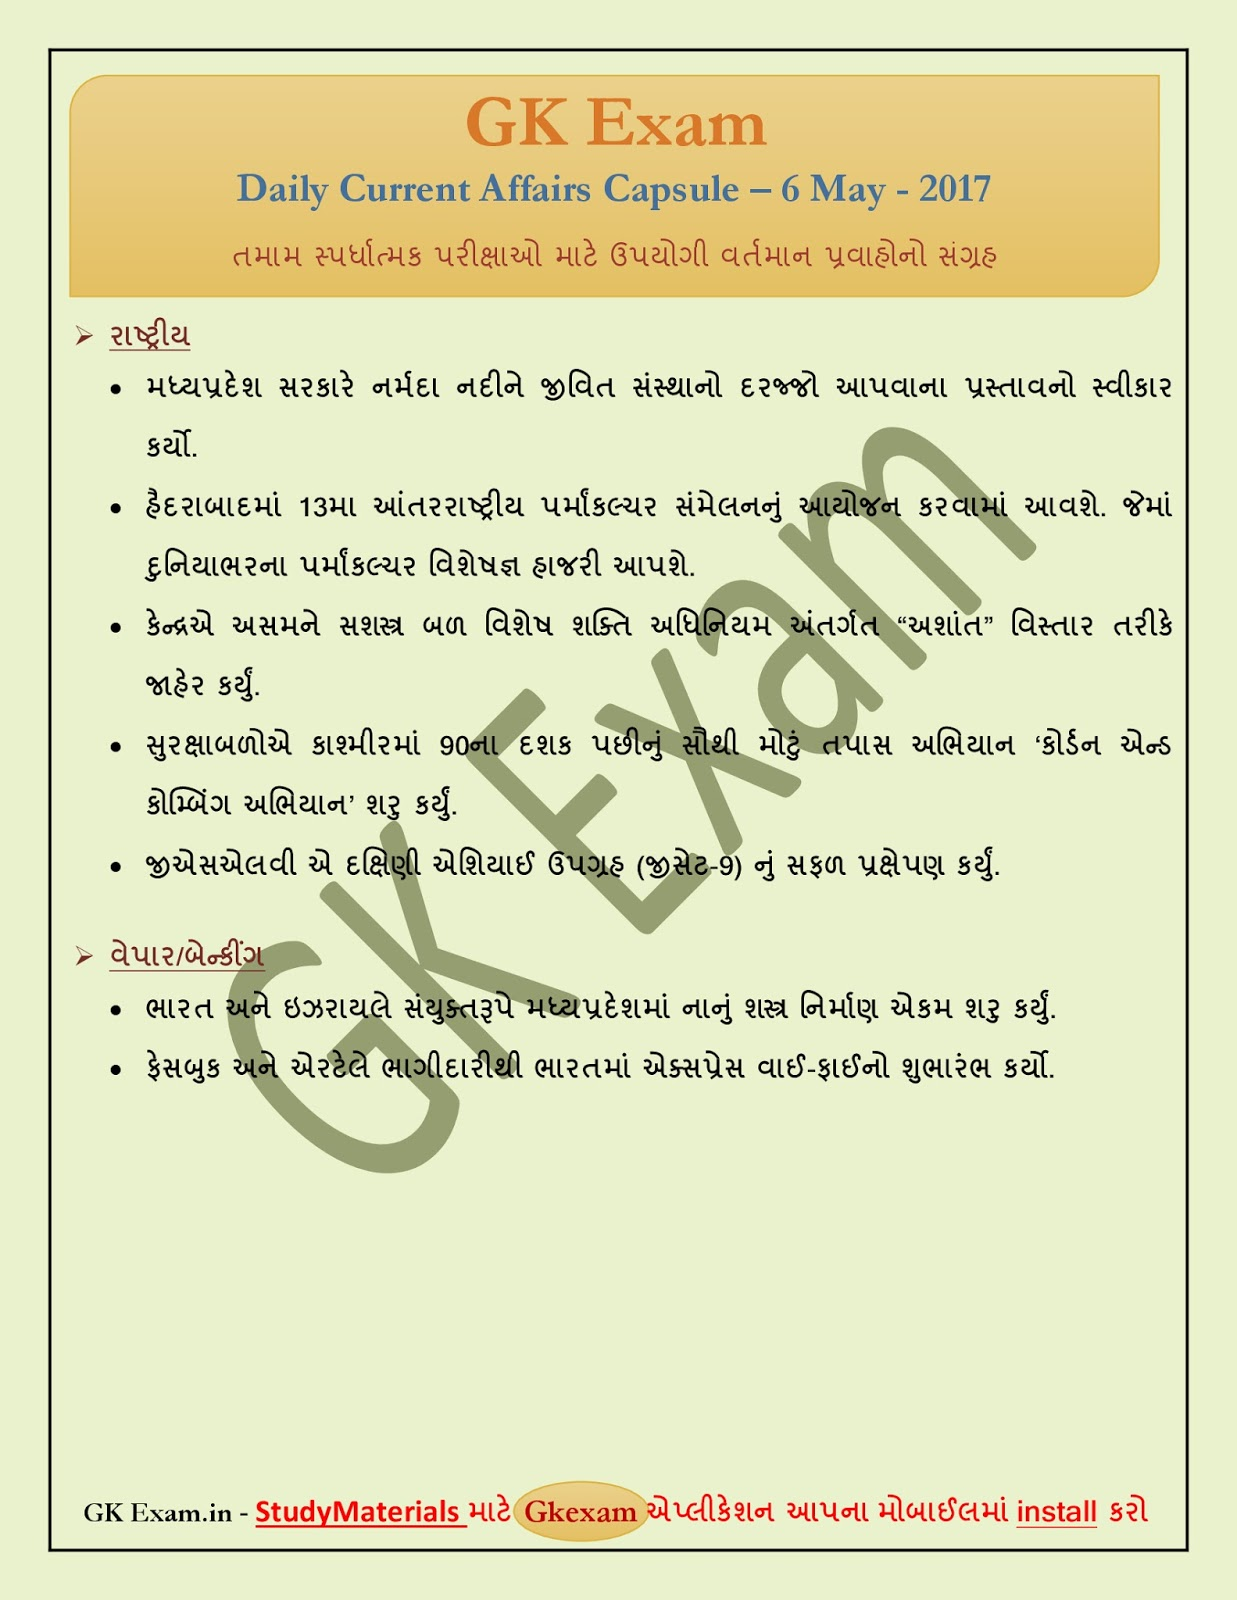 gujarati dating sites Find lakhs of verified gujarati matrimony profiles on jeevansathi safe & secured matchmaking with exclusive privacy add your profile now.